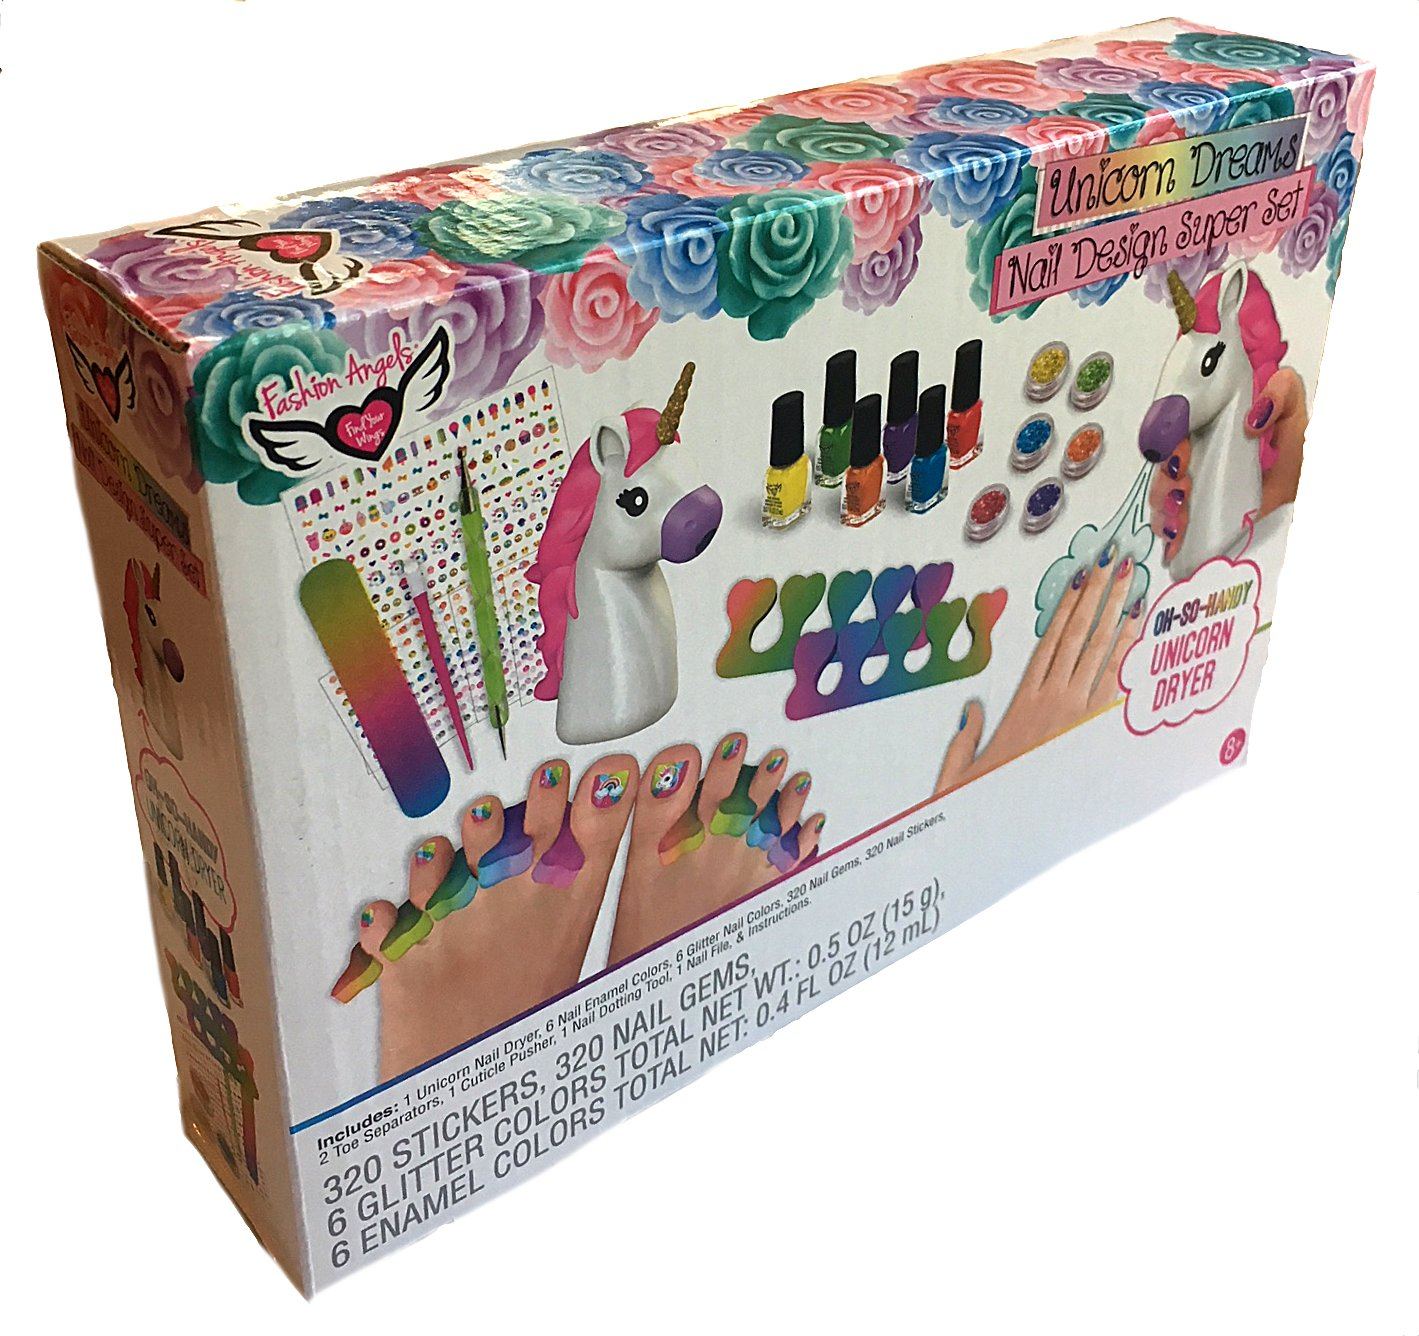 Fashion Angels 12180 Unicorn Dreams Nail Design Super Set Toy (Over 650 Piece), Assorted, Pack of 1 8